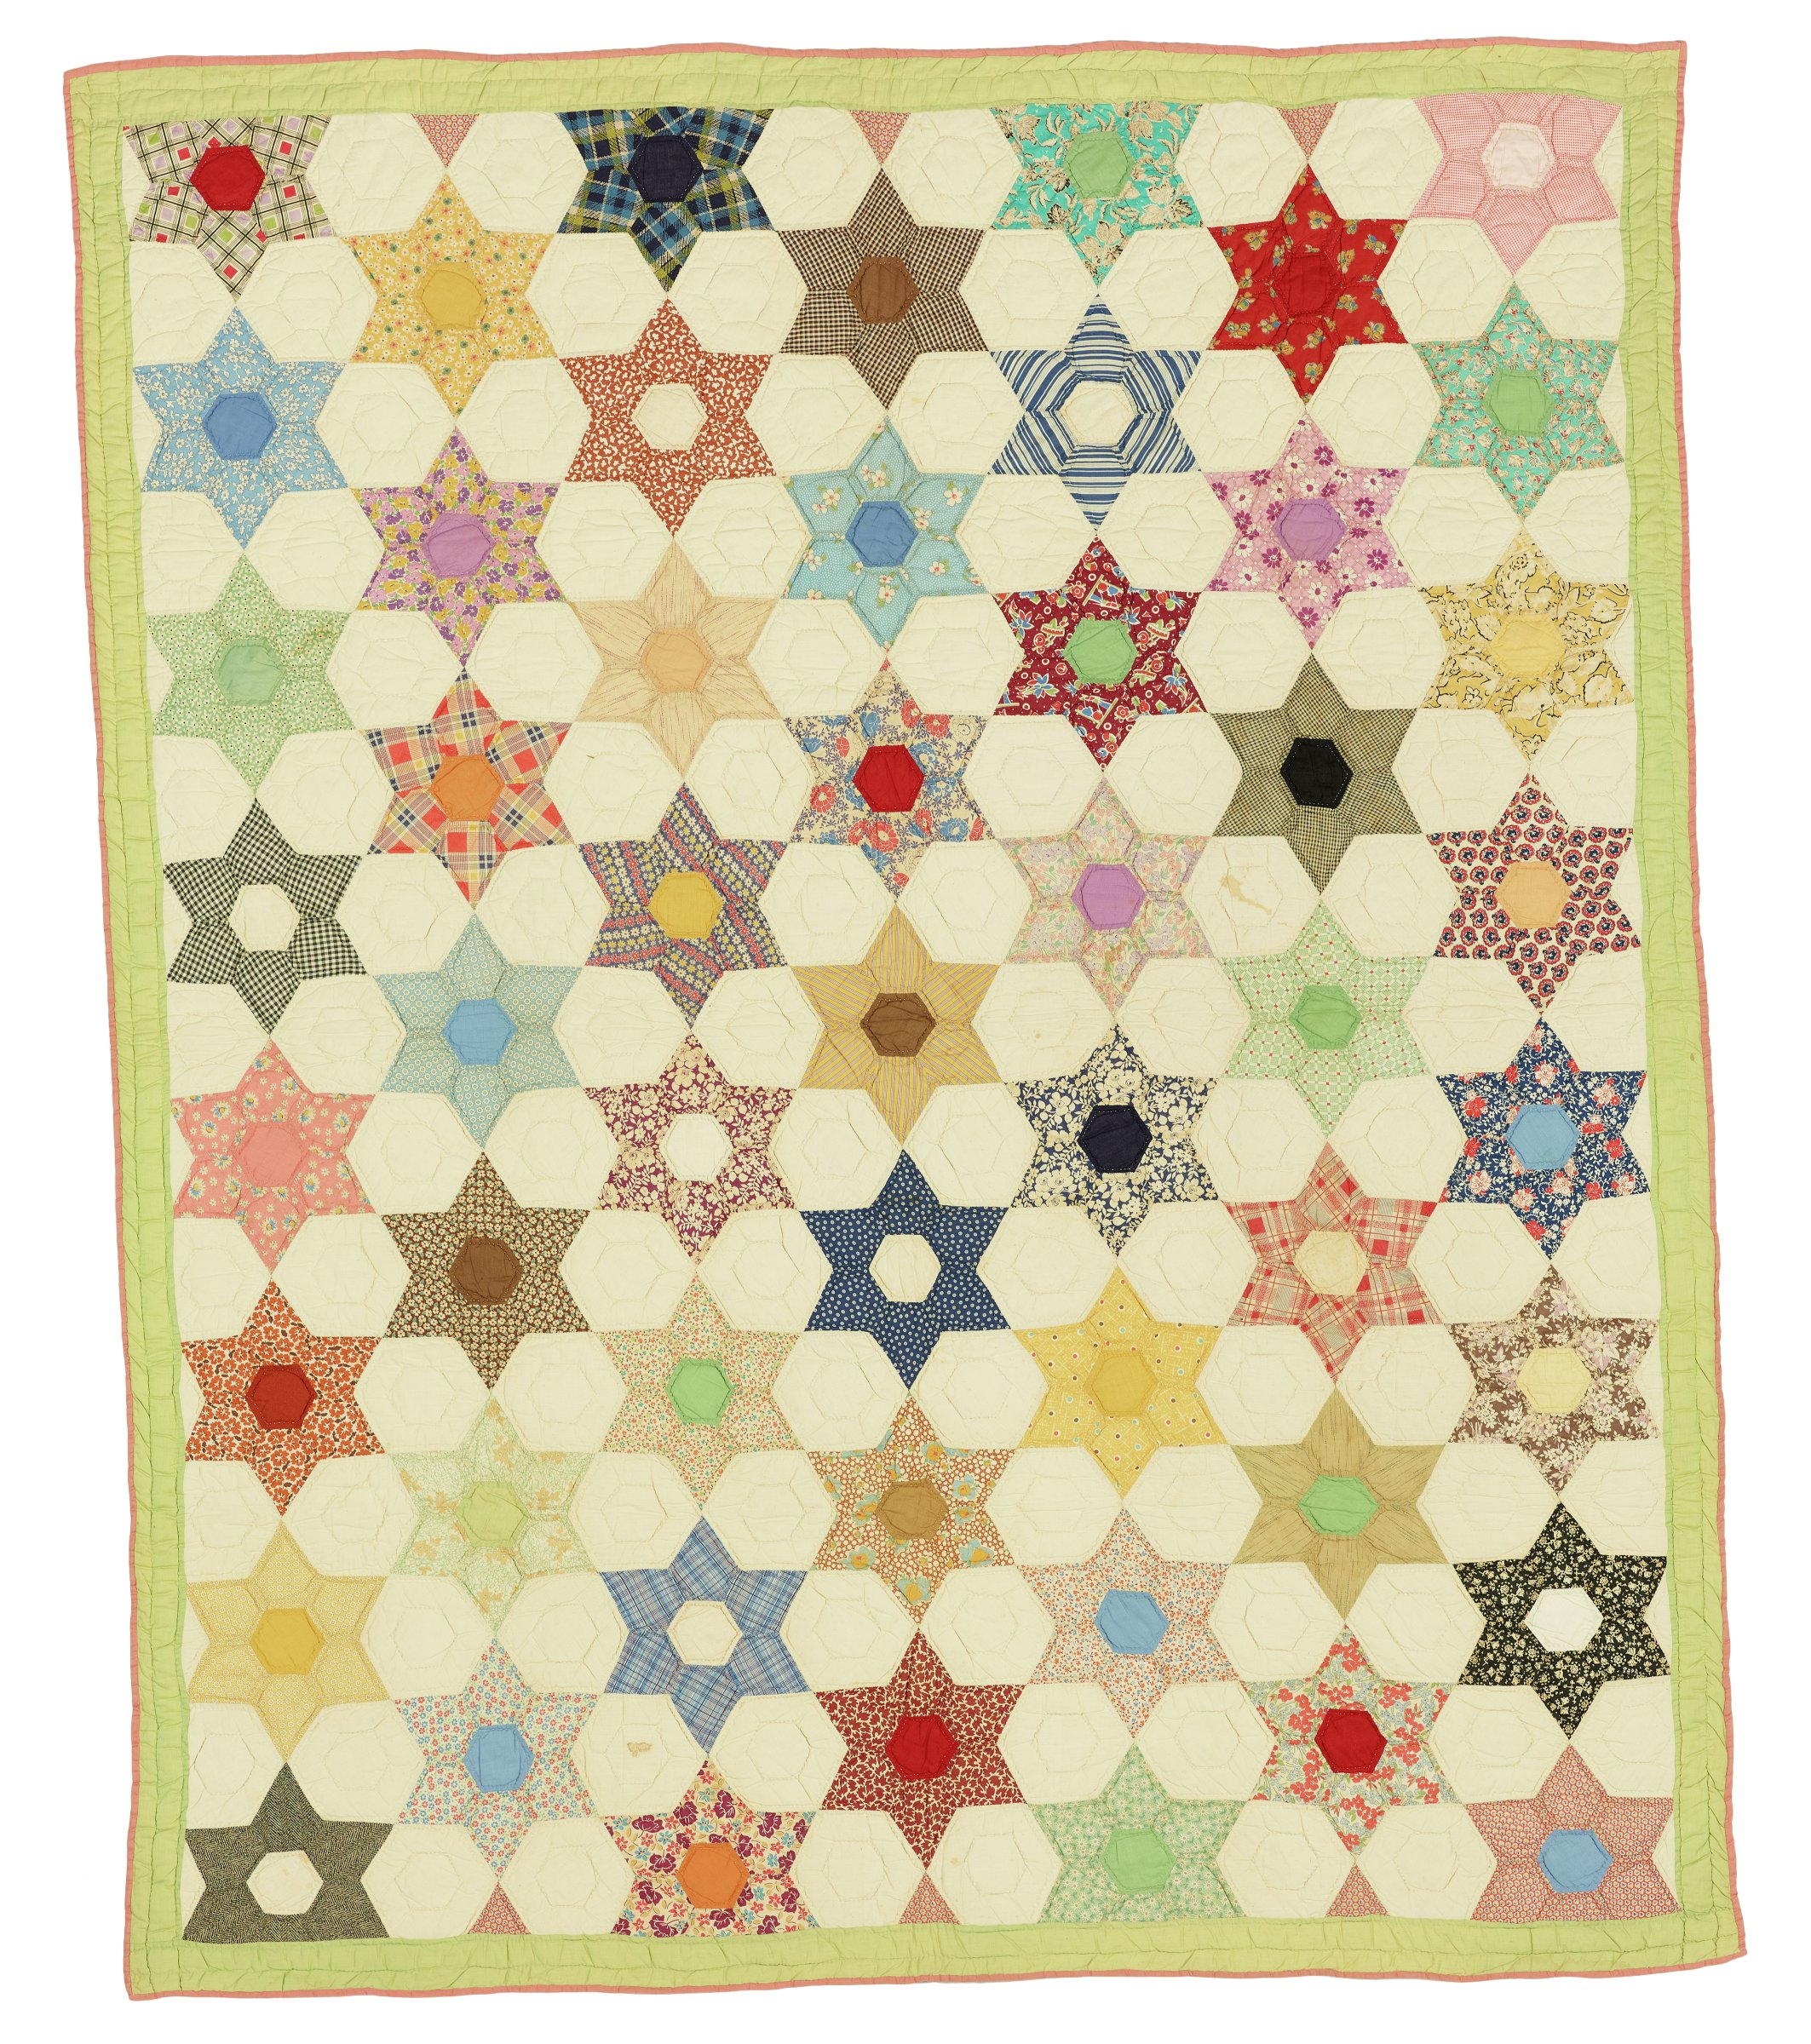 """Large rectangular quilt made of cotton feed sacks in the """"Six-Pointed Star"""" pattern, pieced of small six-pointed stars in a variety of patterns and colors between white hexagons, edged in pale green with a narrow pink binding."""